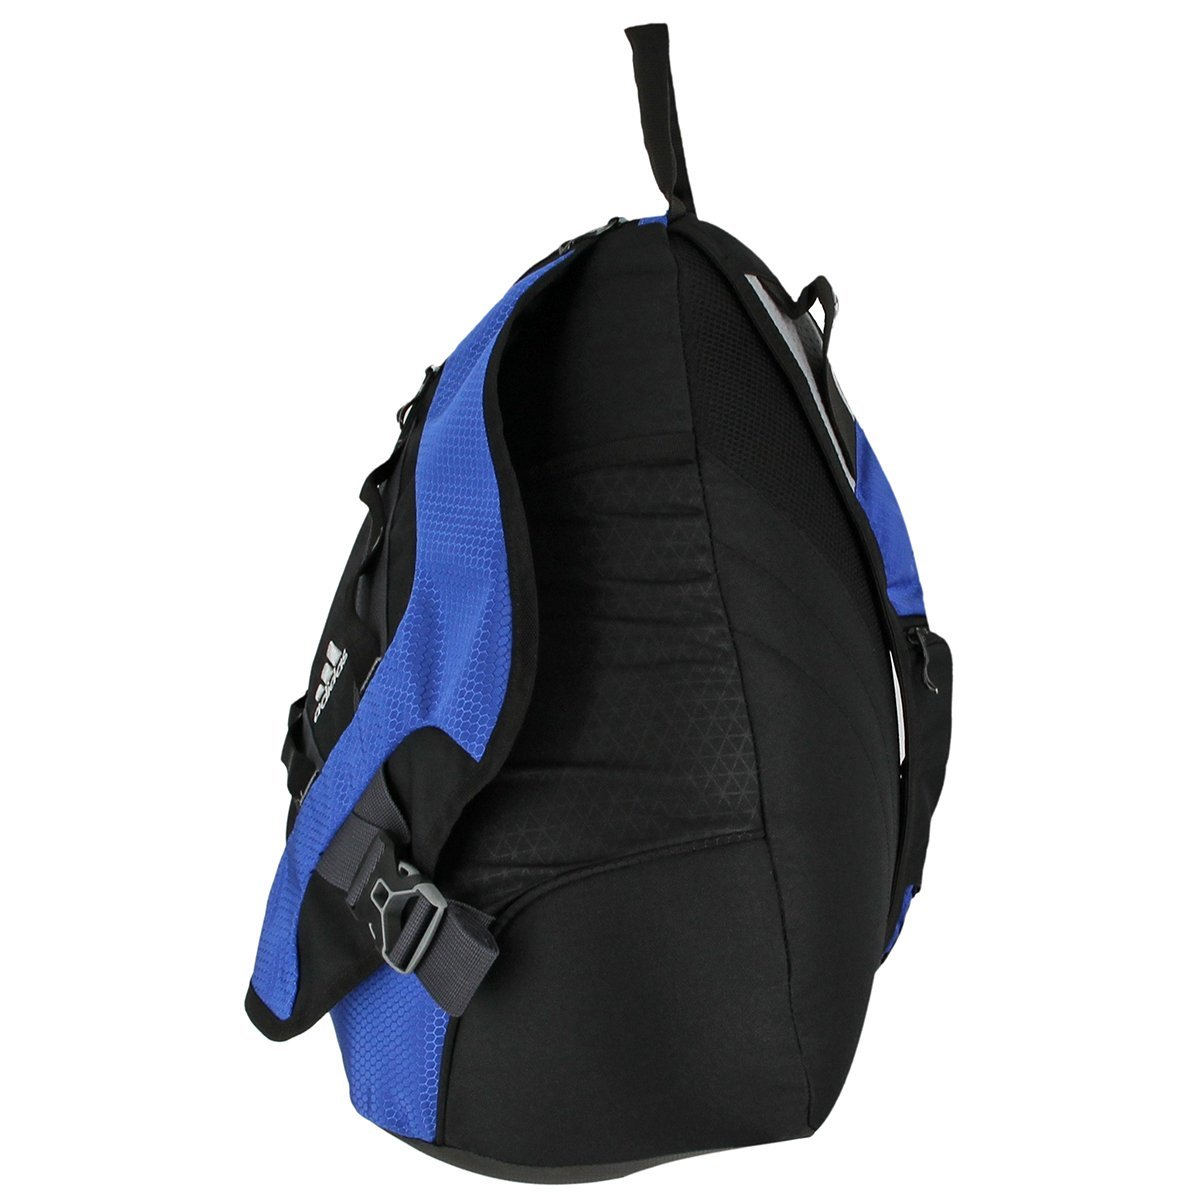 Adidas Capital Sling Backpack e307db20765e1